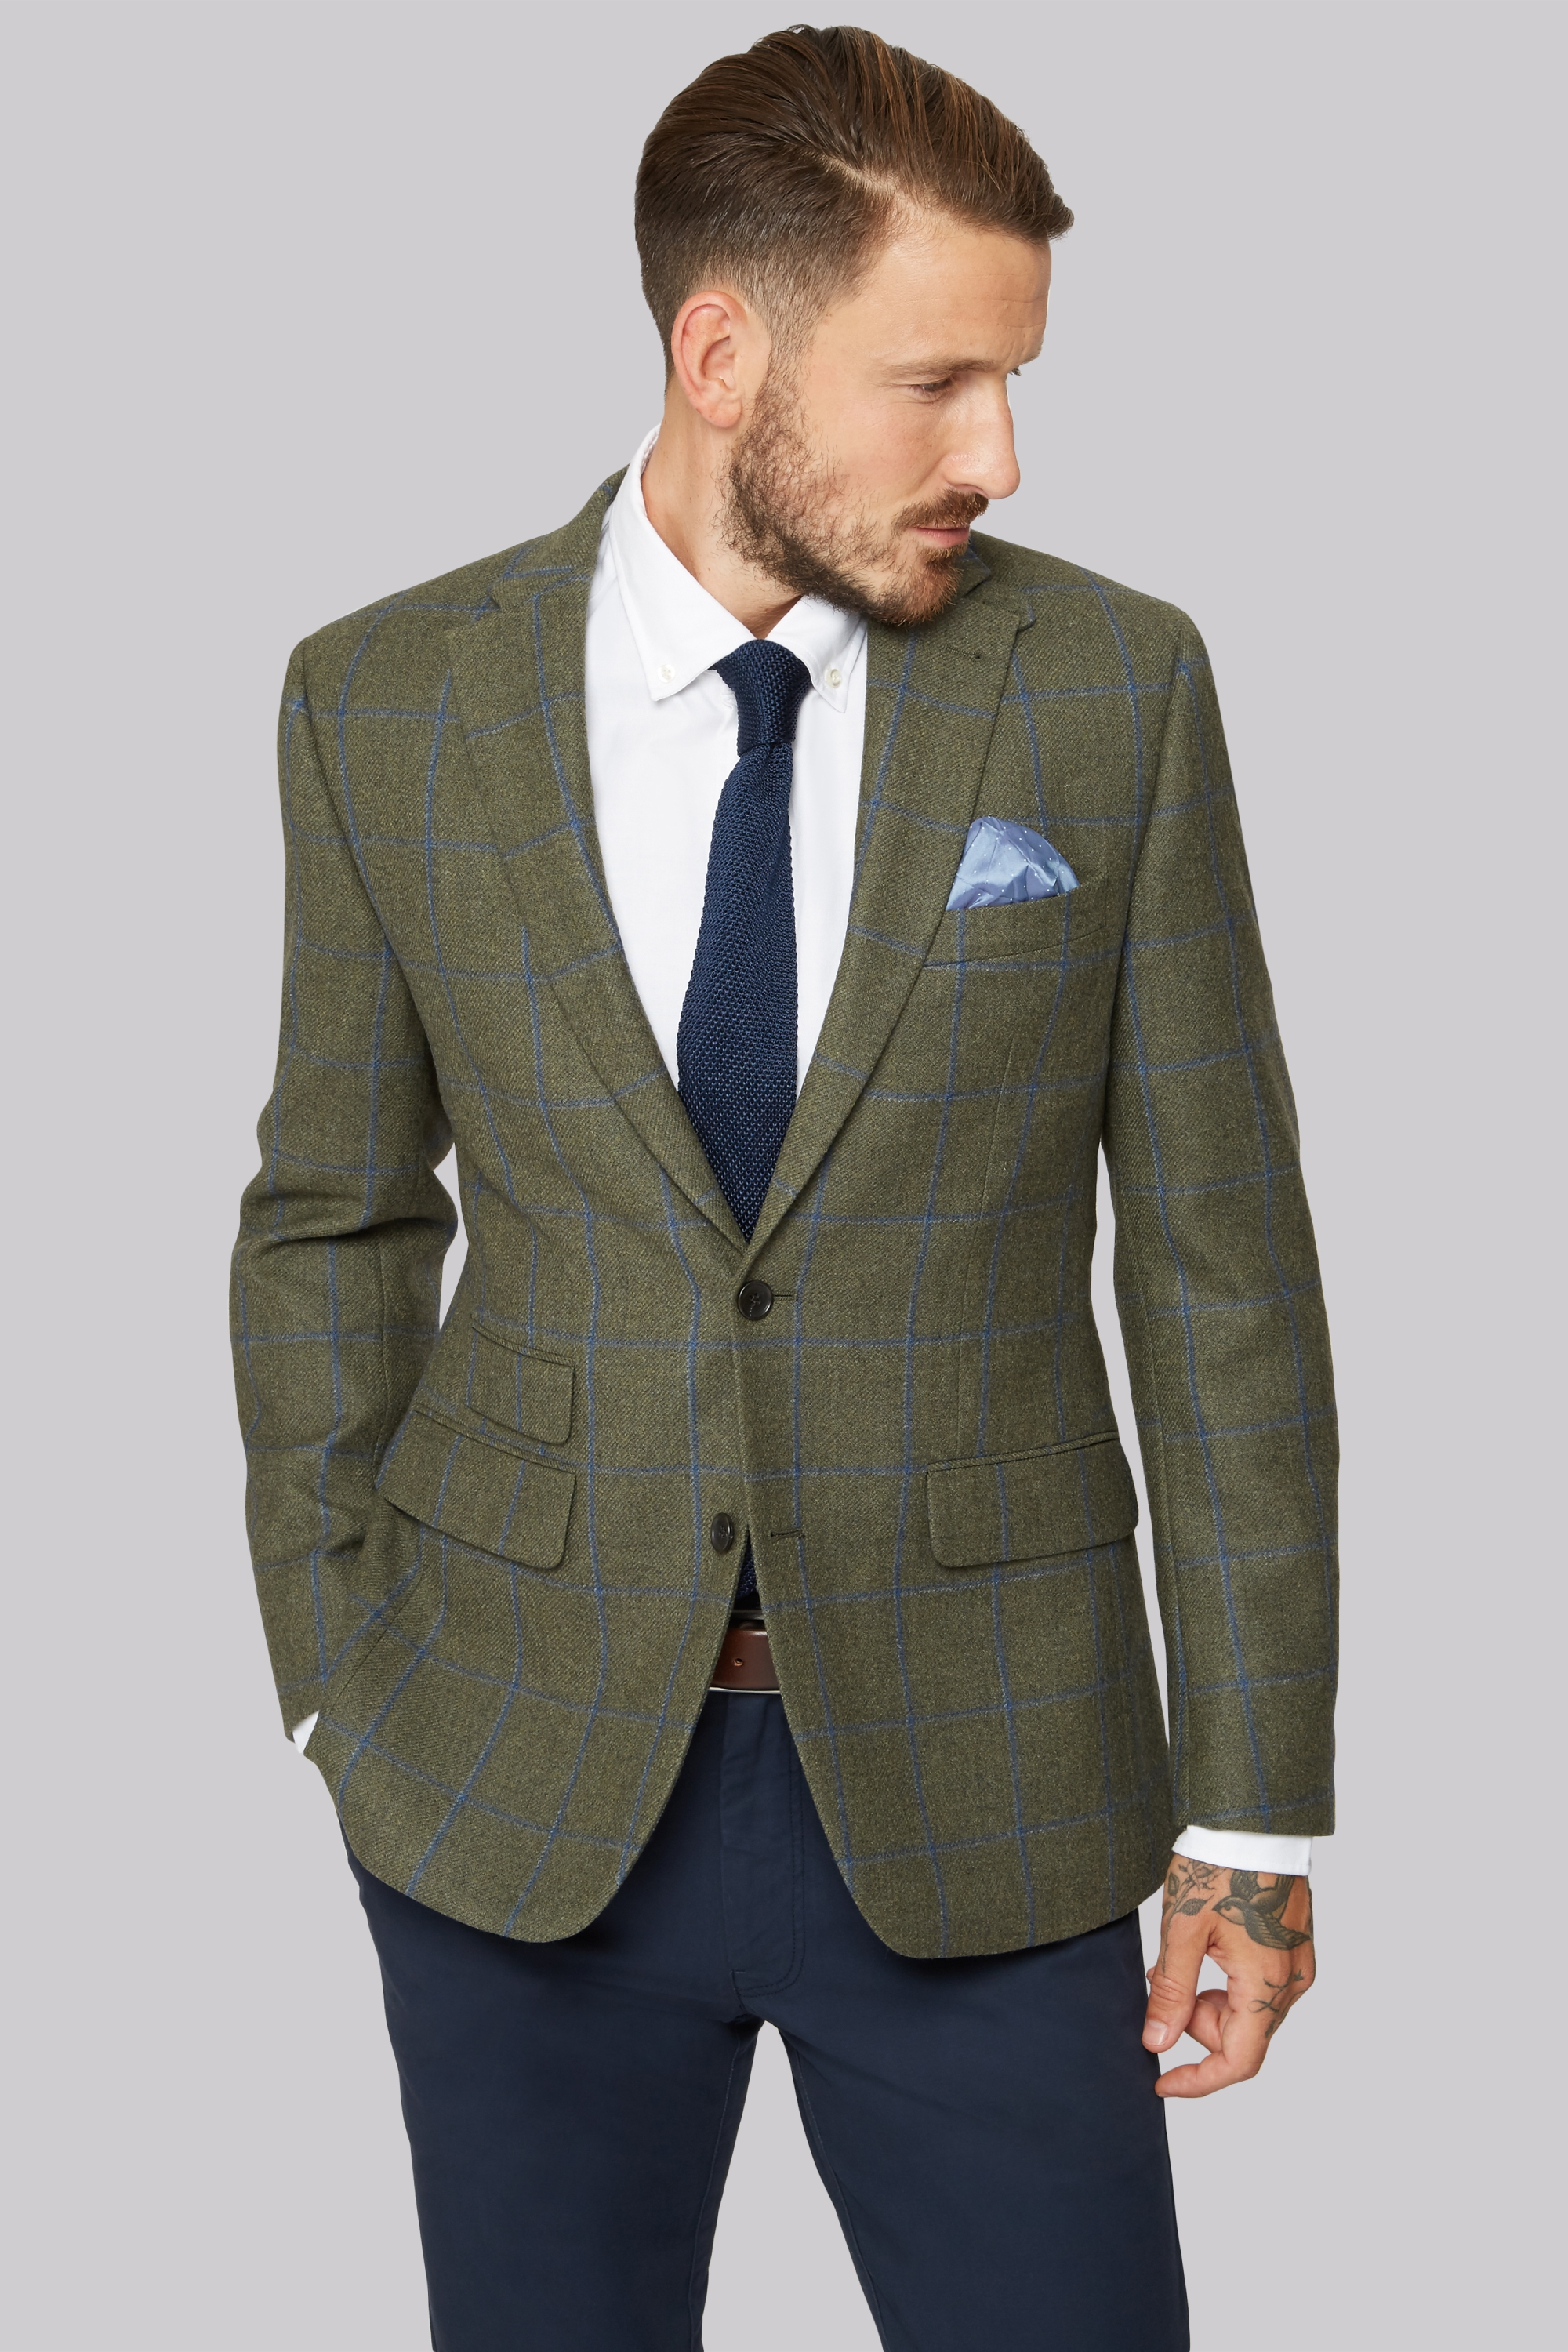 Moss Bros Moss 1851 Green with Blue Windowpane check Jacket